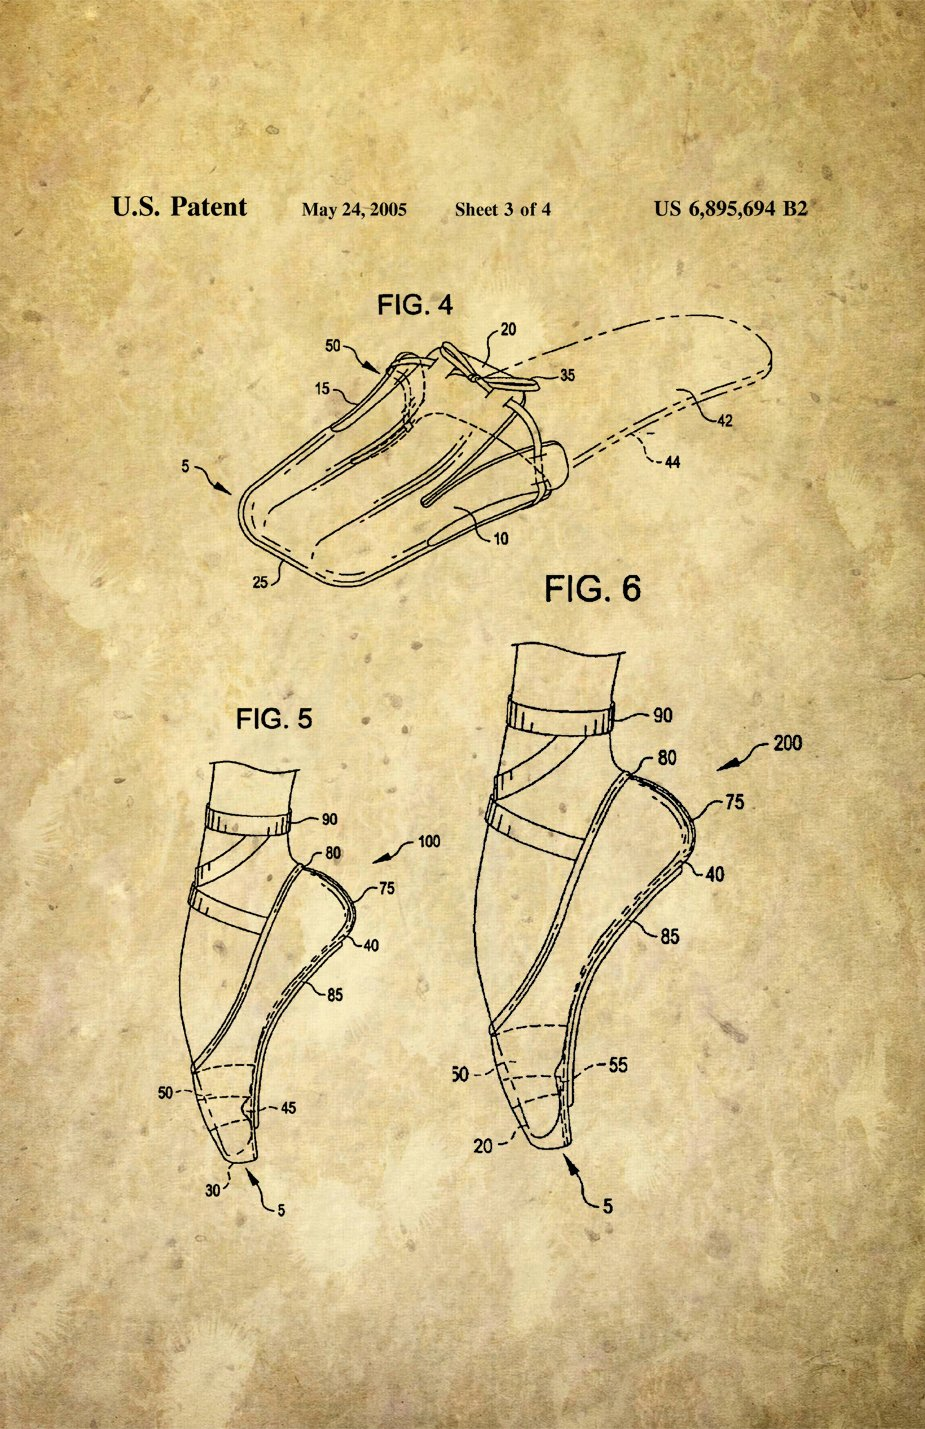 Framable Patent Art The Original Ready to Frame D/écor Ballet Slipper Dance Shoe Footwear 11in by 17in Patent Art Poster Print Parchment PAPSSP49PR